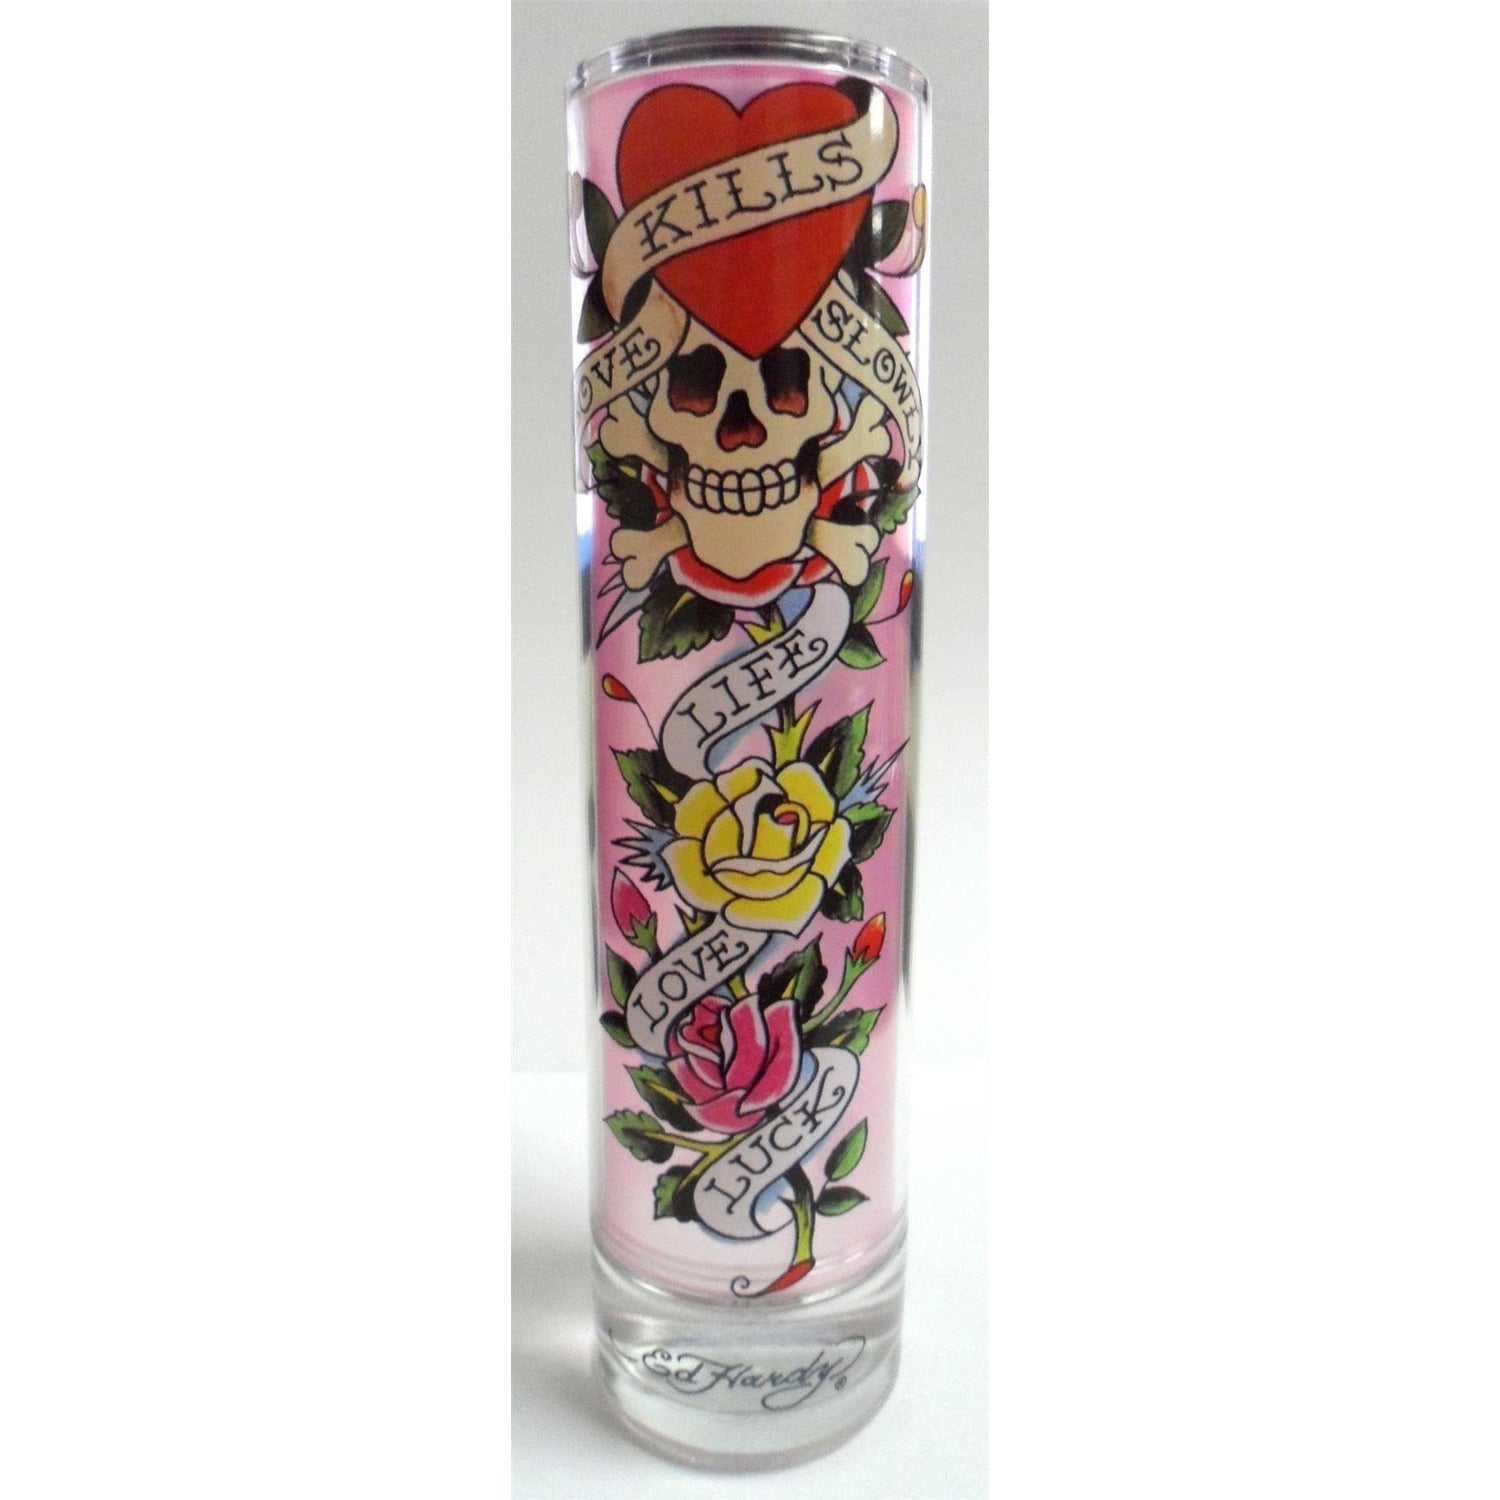 ed-hardy-love-kills-slowly-3-3-3-4-oz-perfume-new-unboxed-with-cap-tester